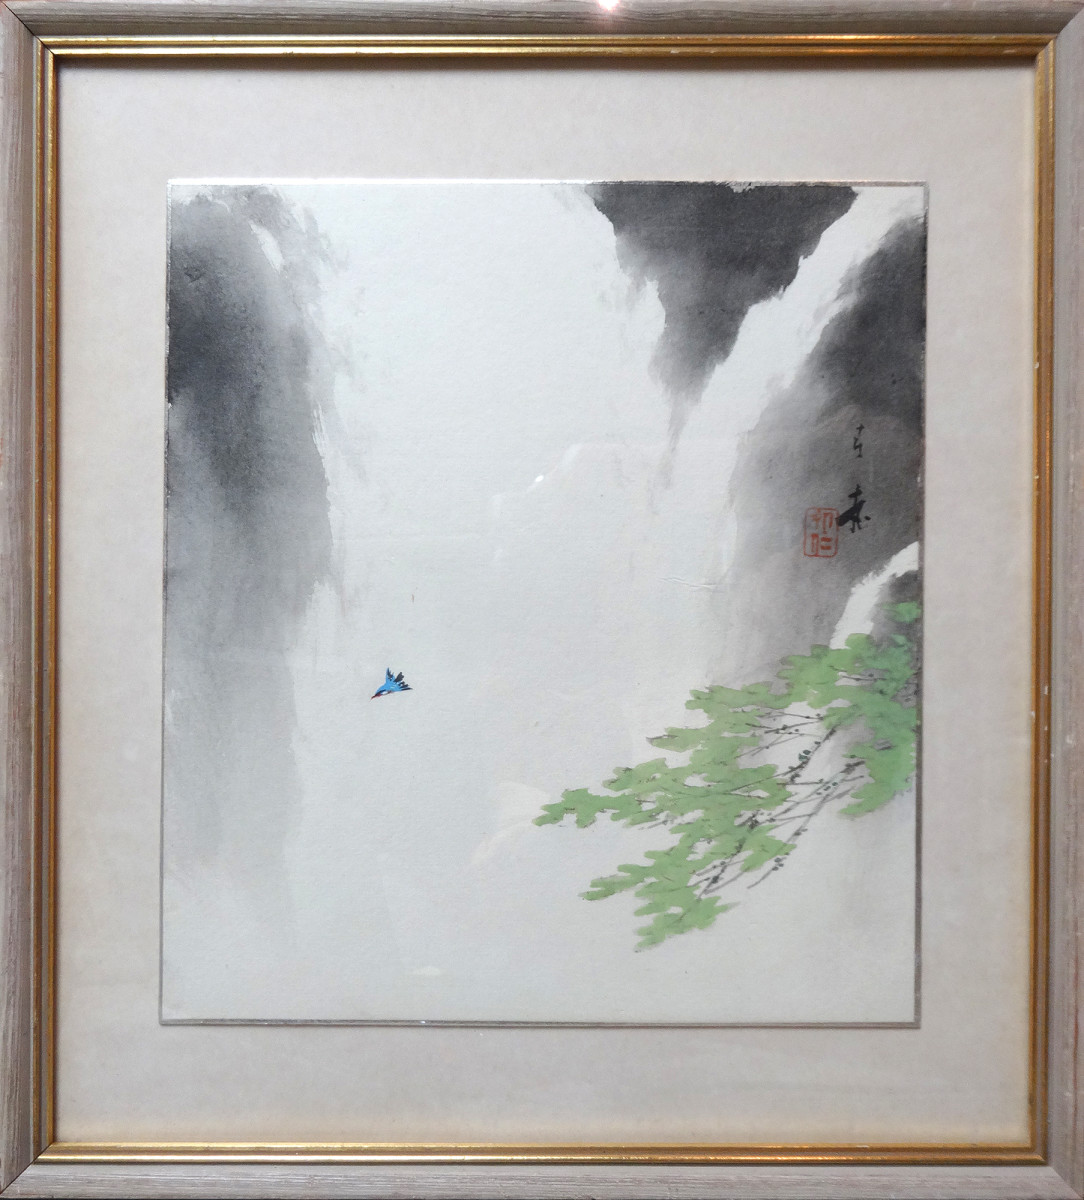 2125 - Untitled, Blue Bird by Japanese